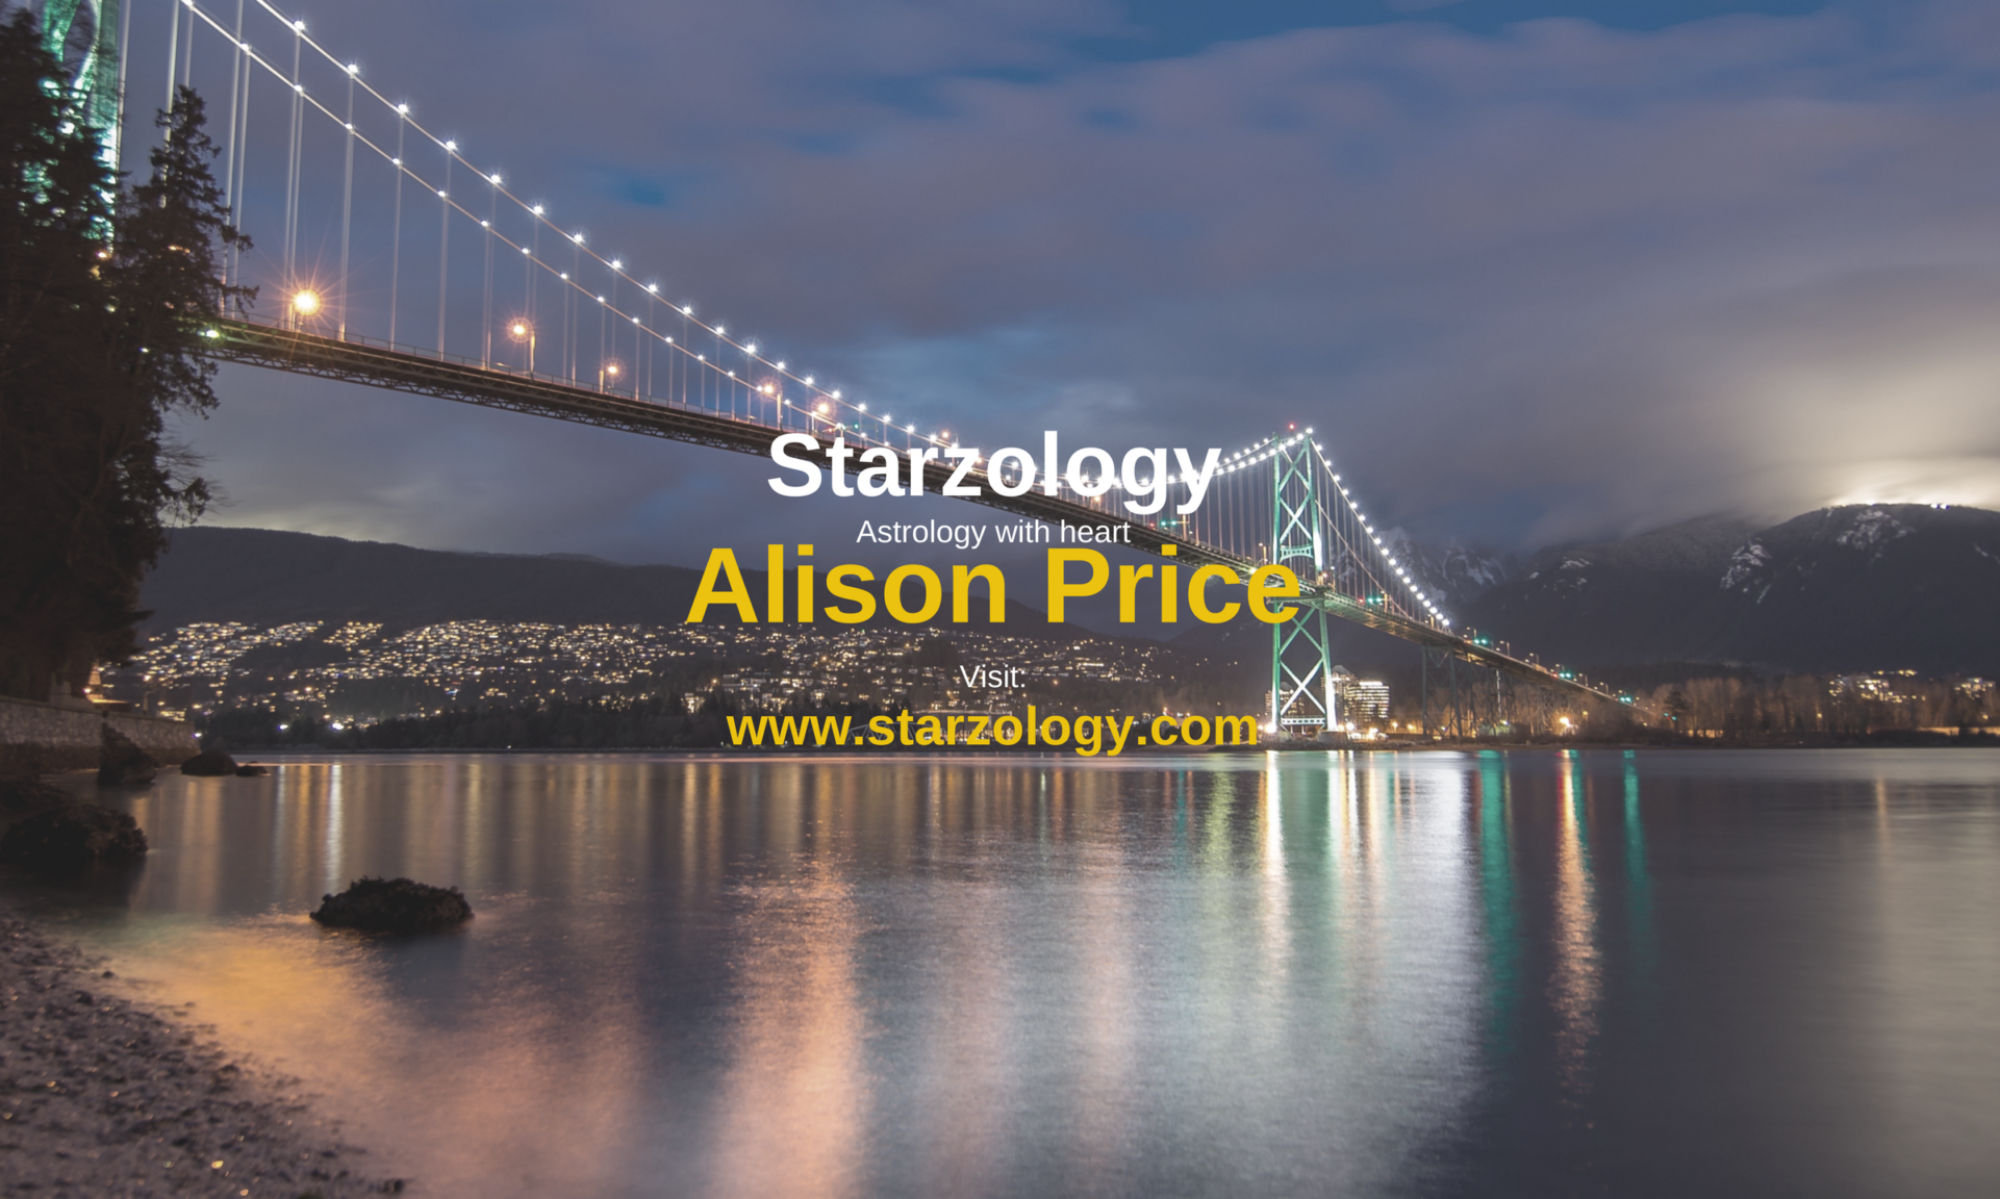 Starzology astrology with heart empowering you to achieve your starzology astrology with heart nvjuhfo Images